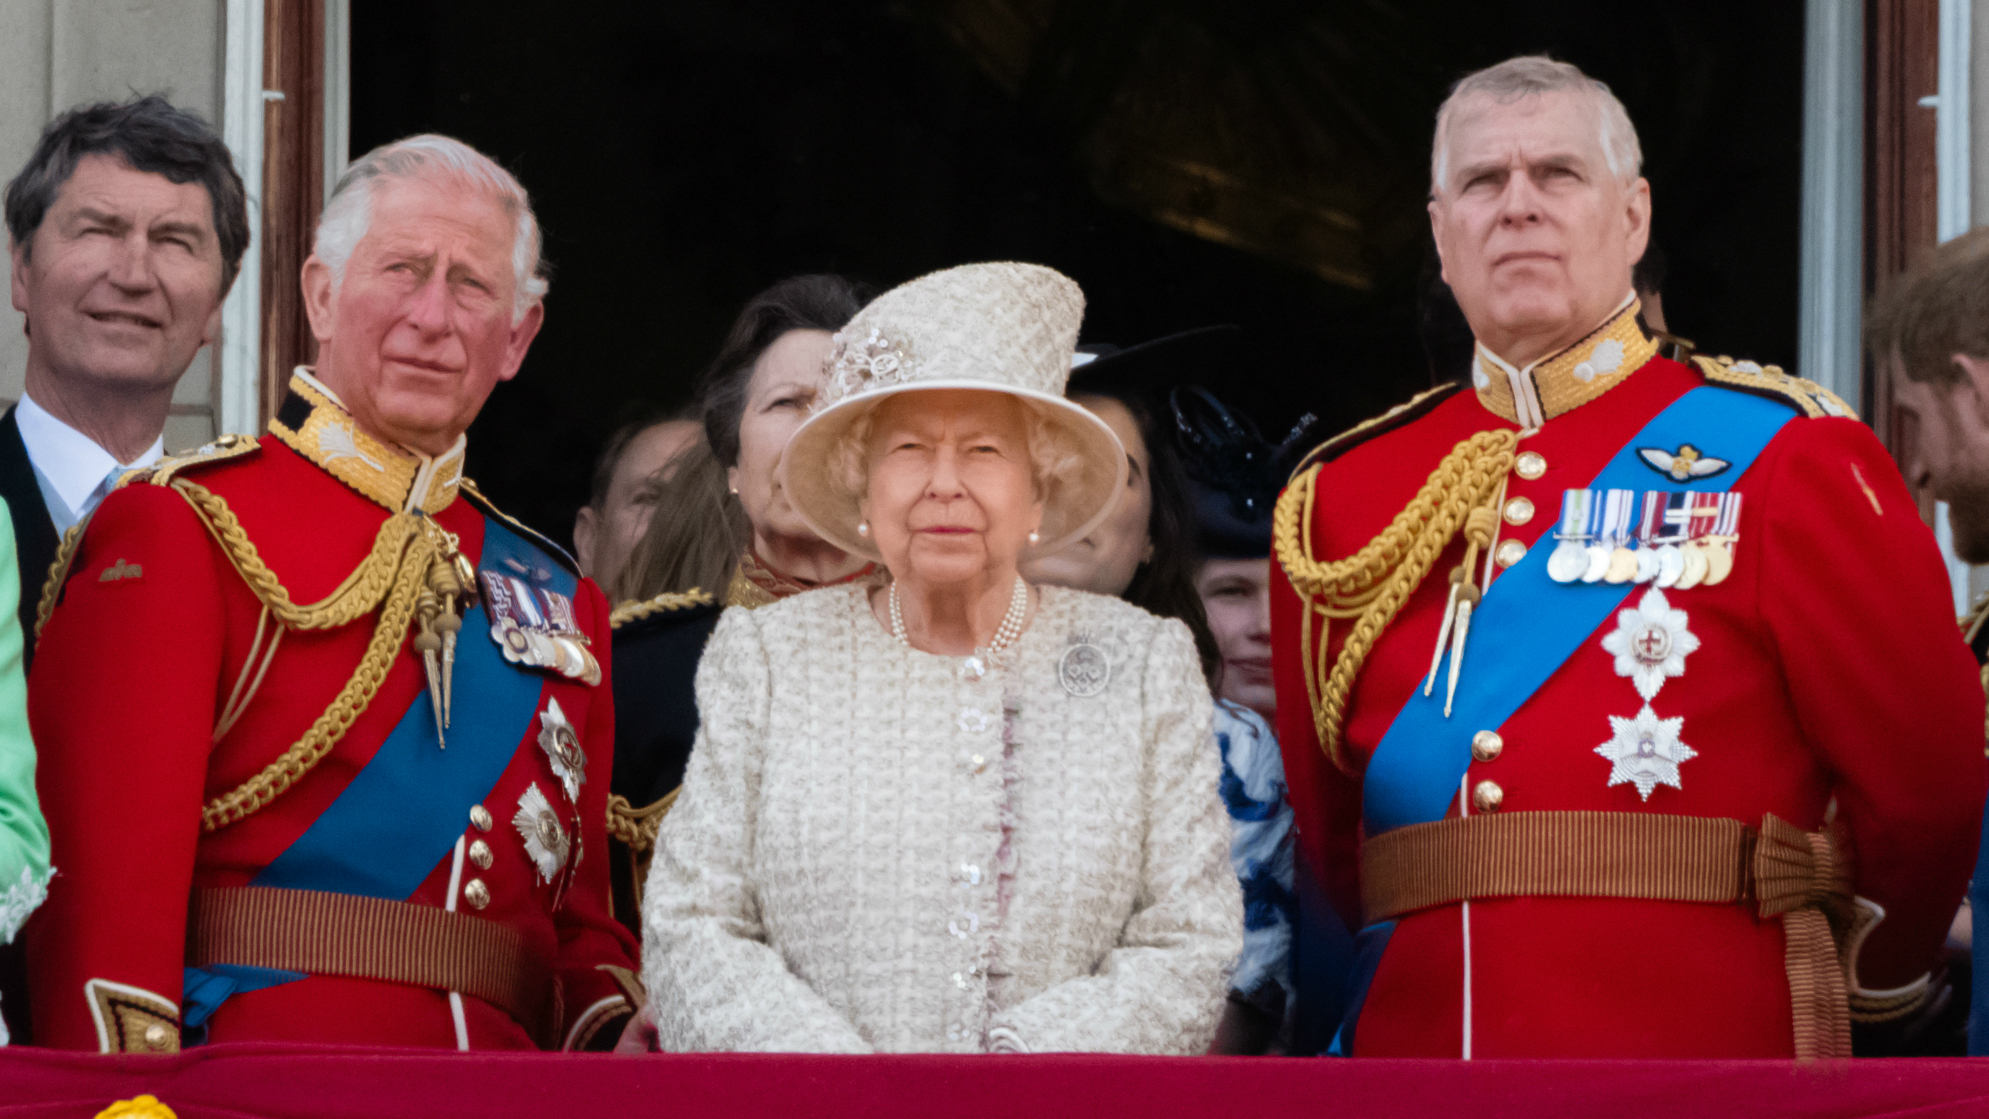 Prince Andrew vs Prince Charles: The inside story of their decades-long rivalry